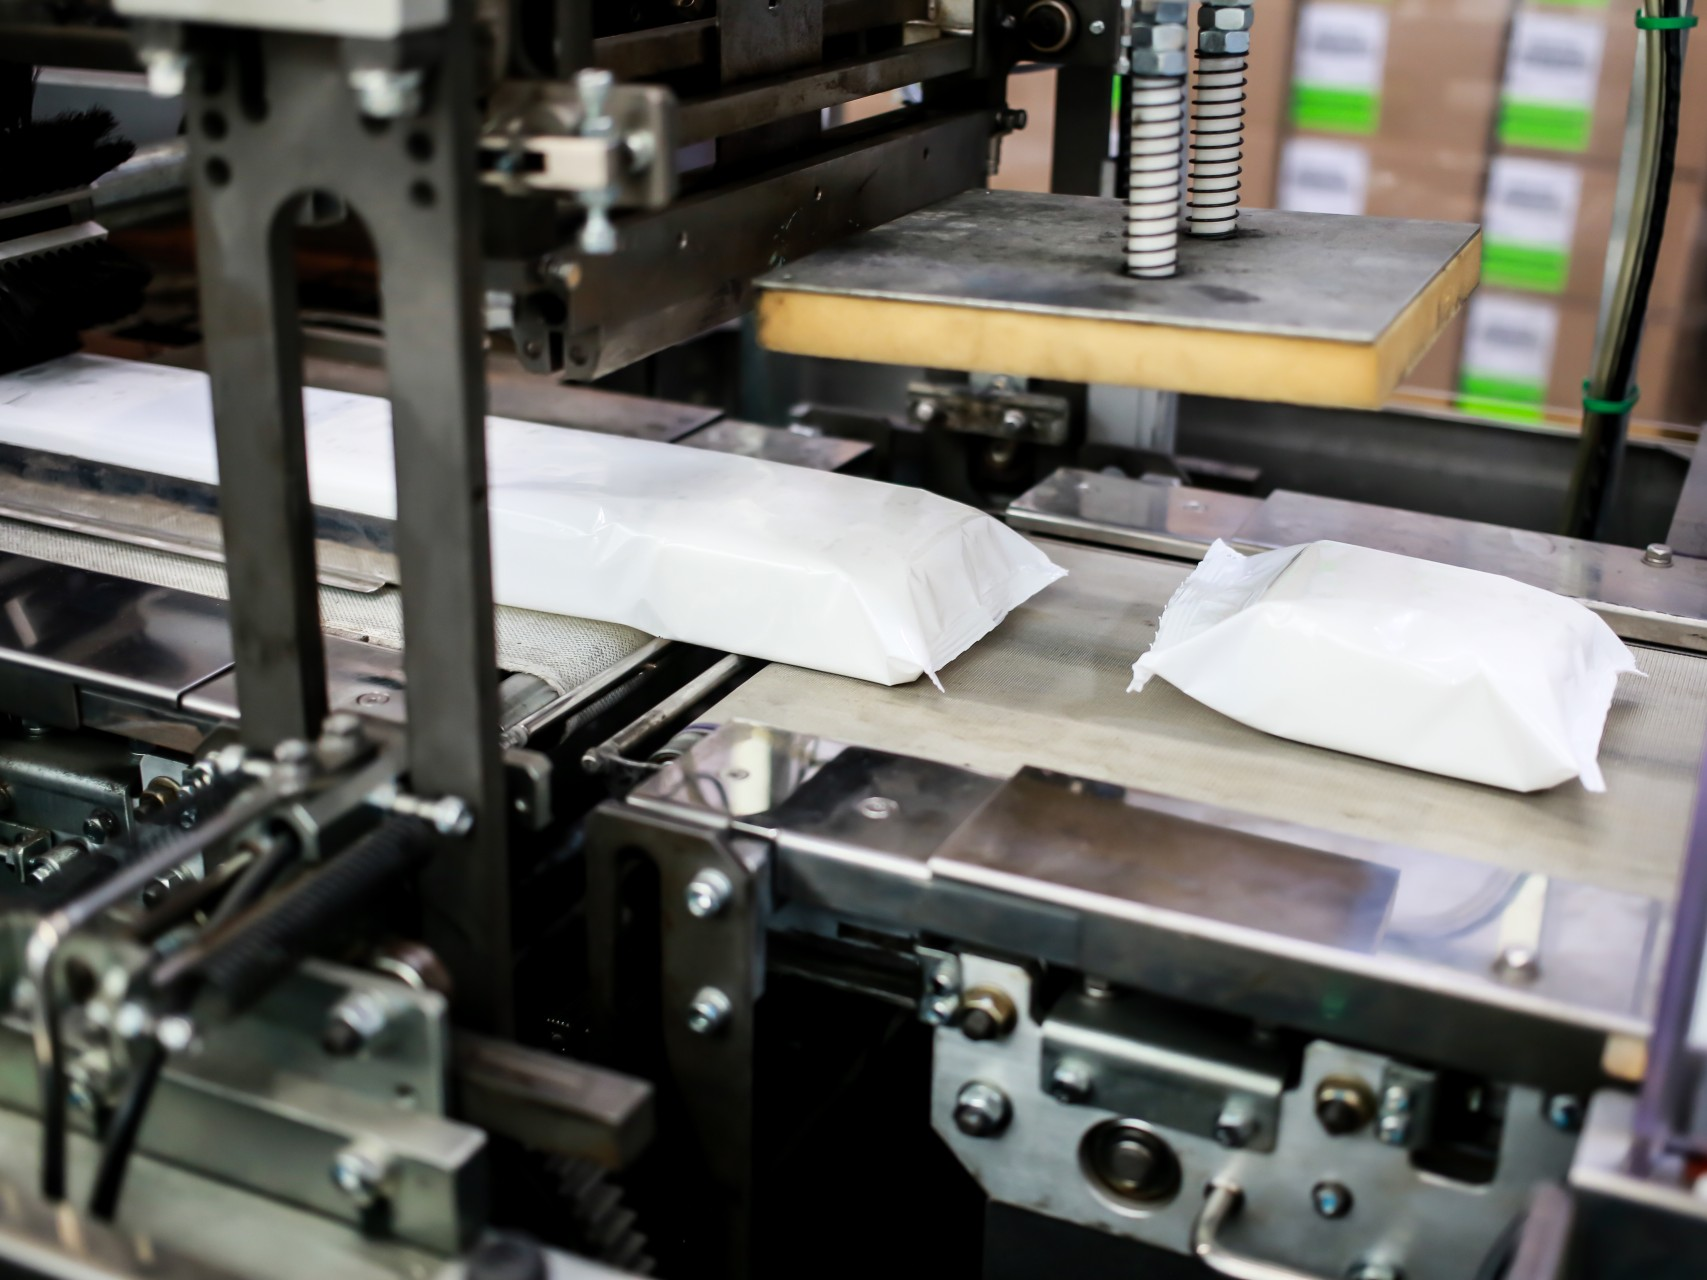 A picture of wet wipes being packaged at the Guardpack factory.